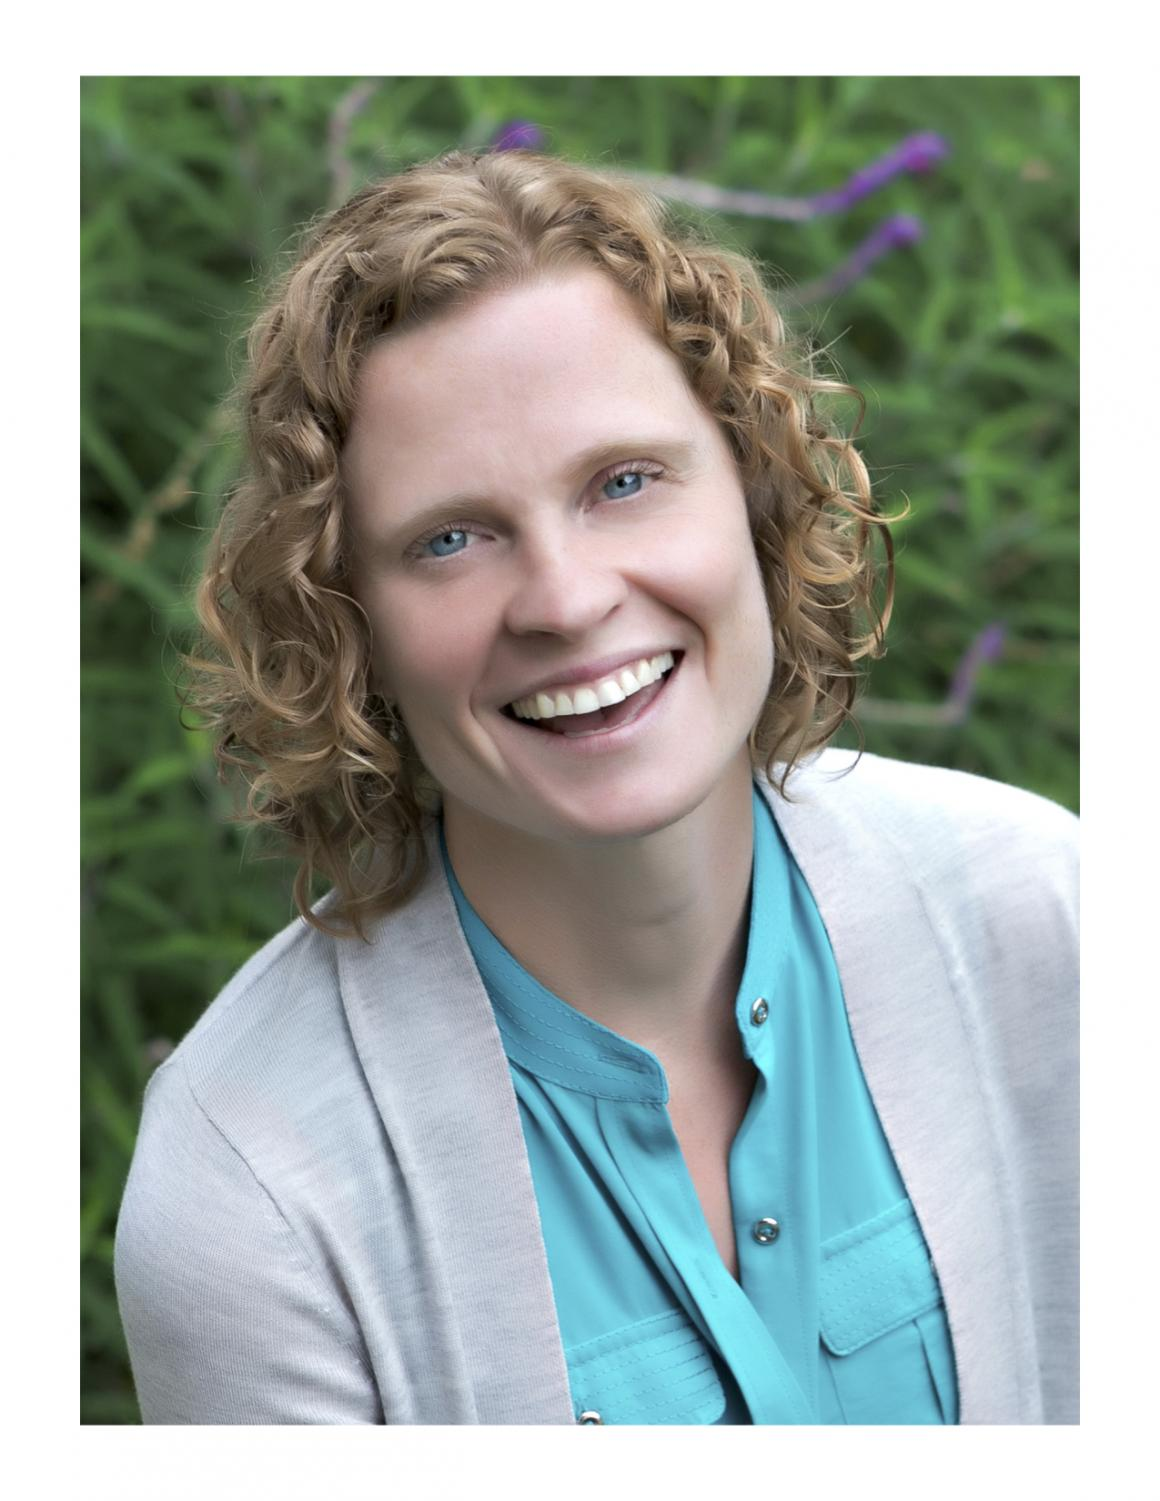 Kristen Kreple, who previously worked at Stanford University, will become Marquette's new Title IX coordinator. Photo courtesy of Kristen Kreple.